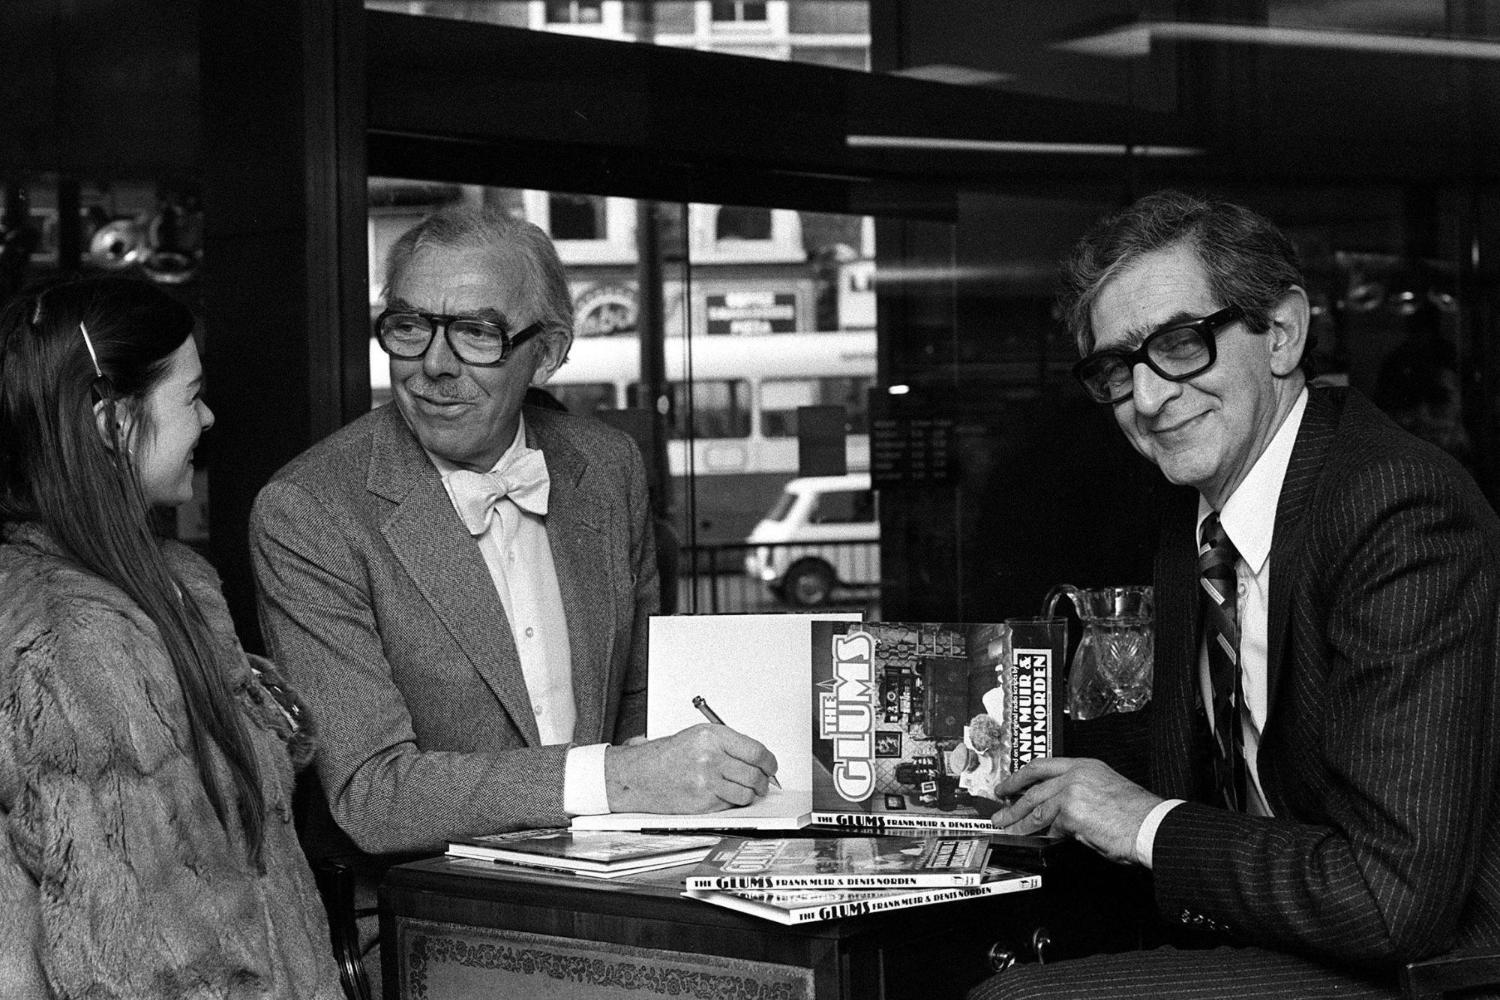 Denis Norden: Comedy writer who became a much-loved TV presenter https://t.co/qhRpjaima0 https://t.co/EamkyRsMwV